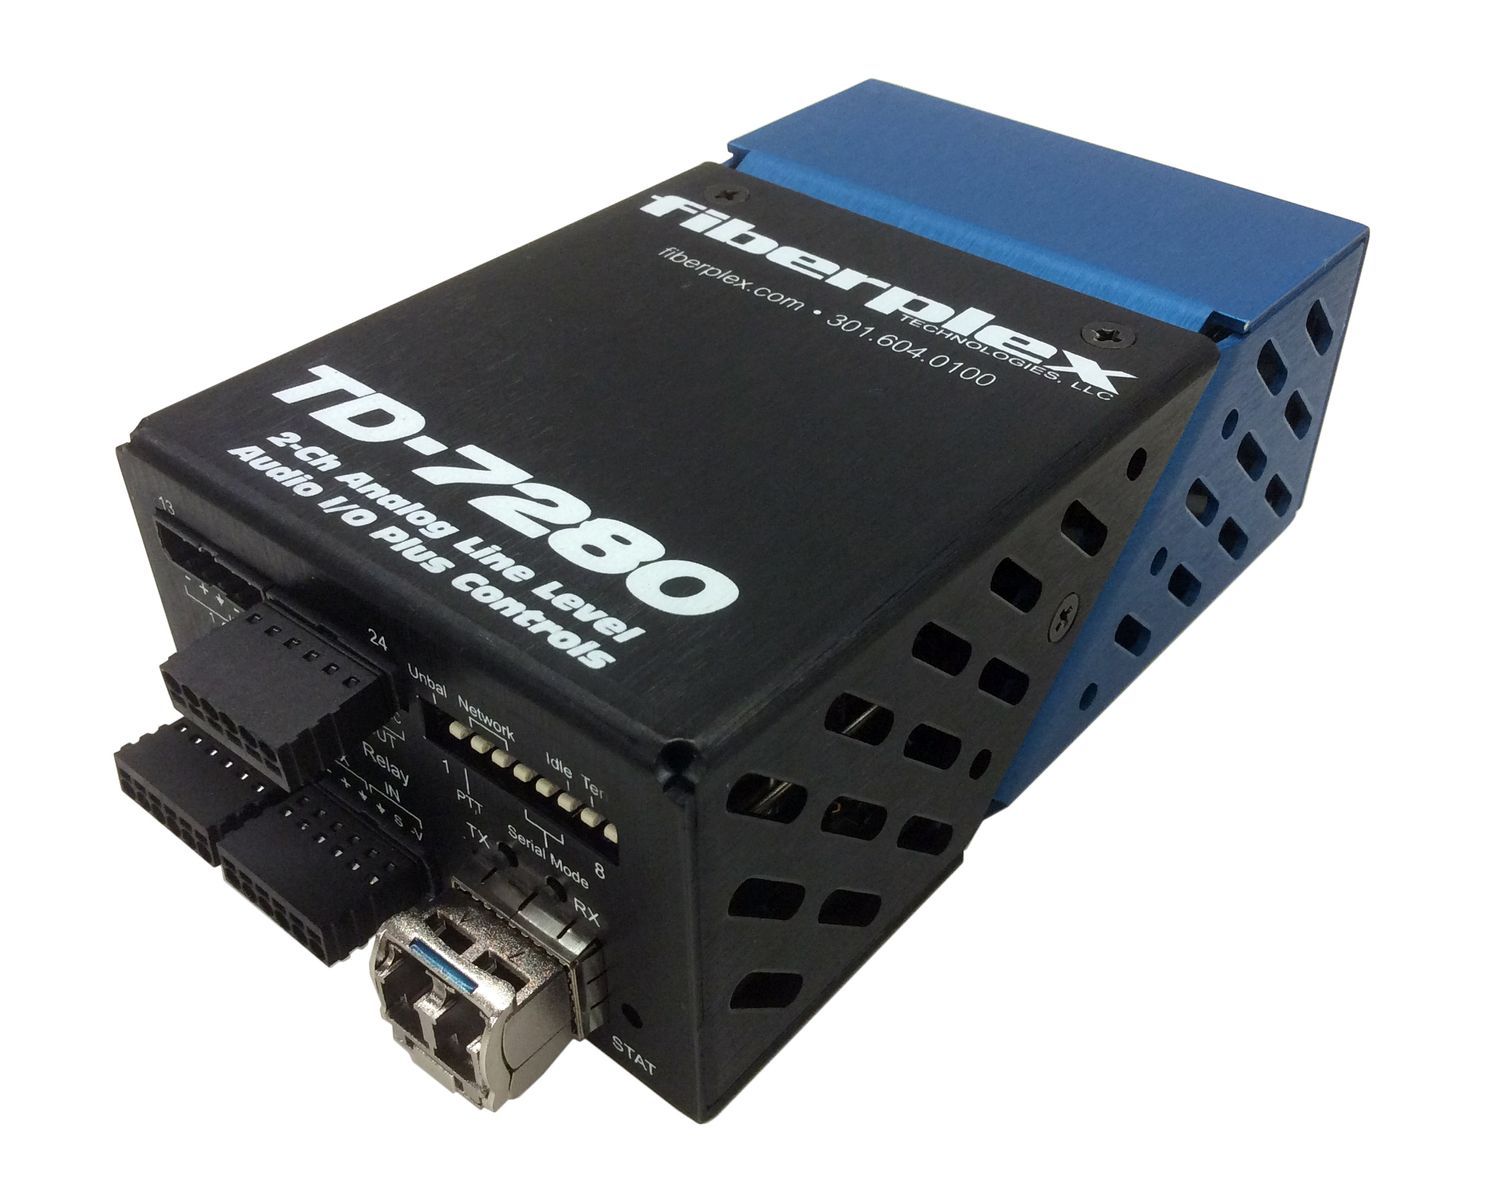 FiberPlex Technologies TD-7280 Transceiver is at Hollywood Sound Systems